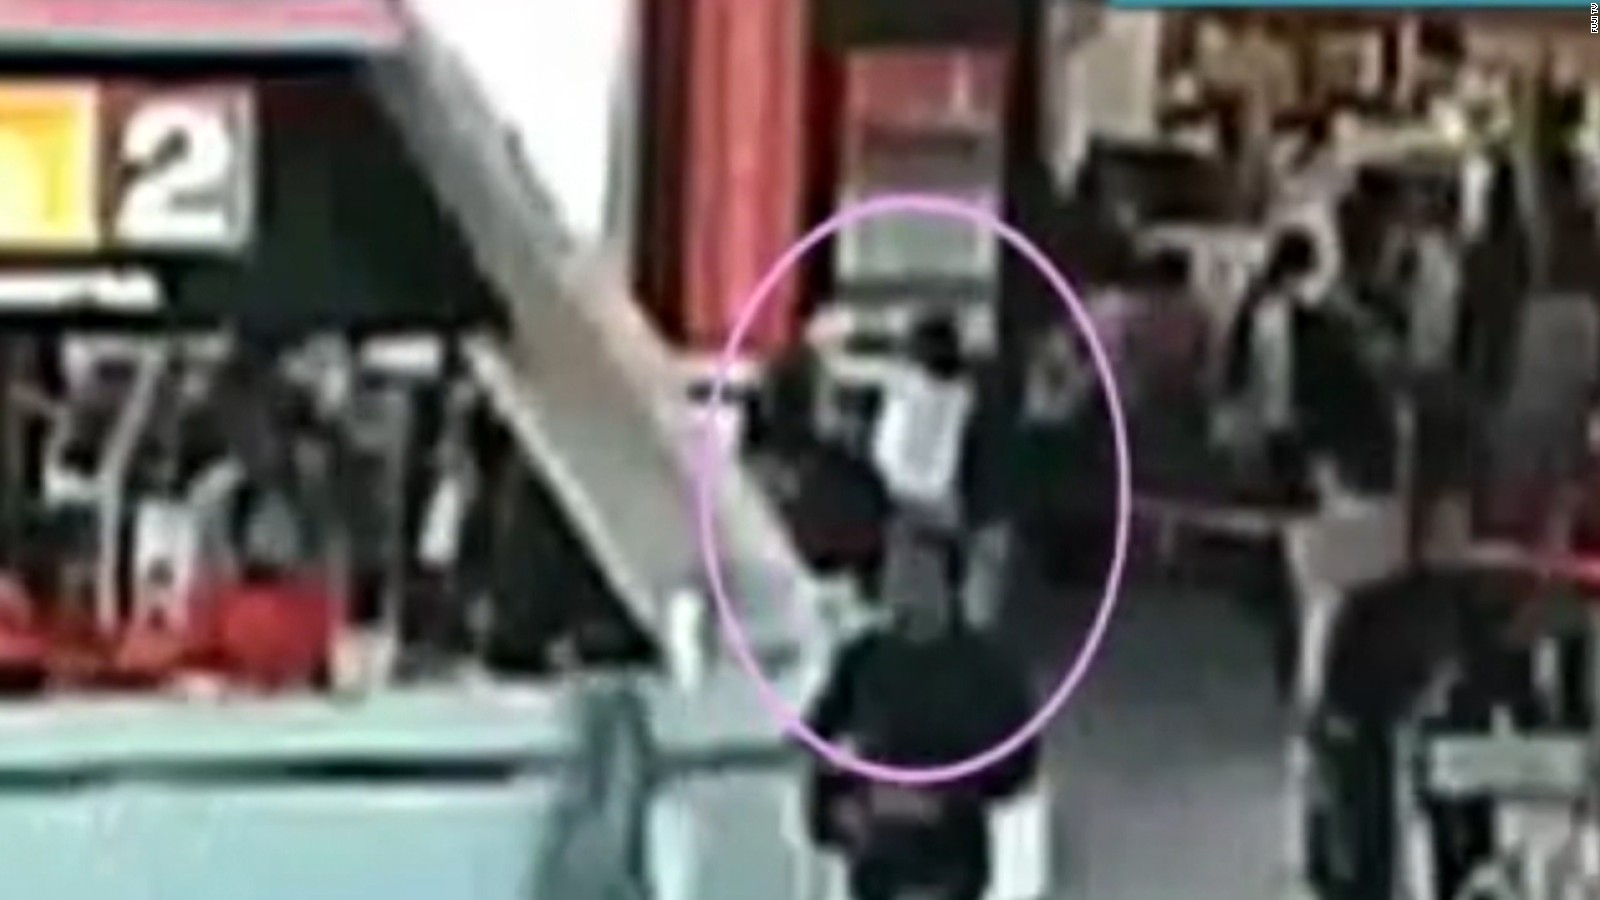 Kim Jong Nam death: Footage surfaces showing attack - CNN